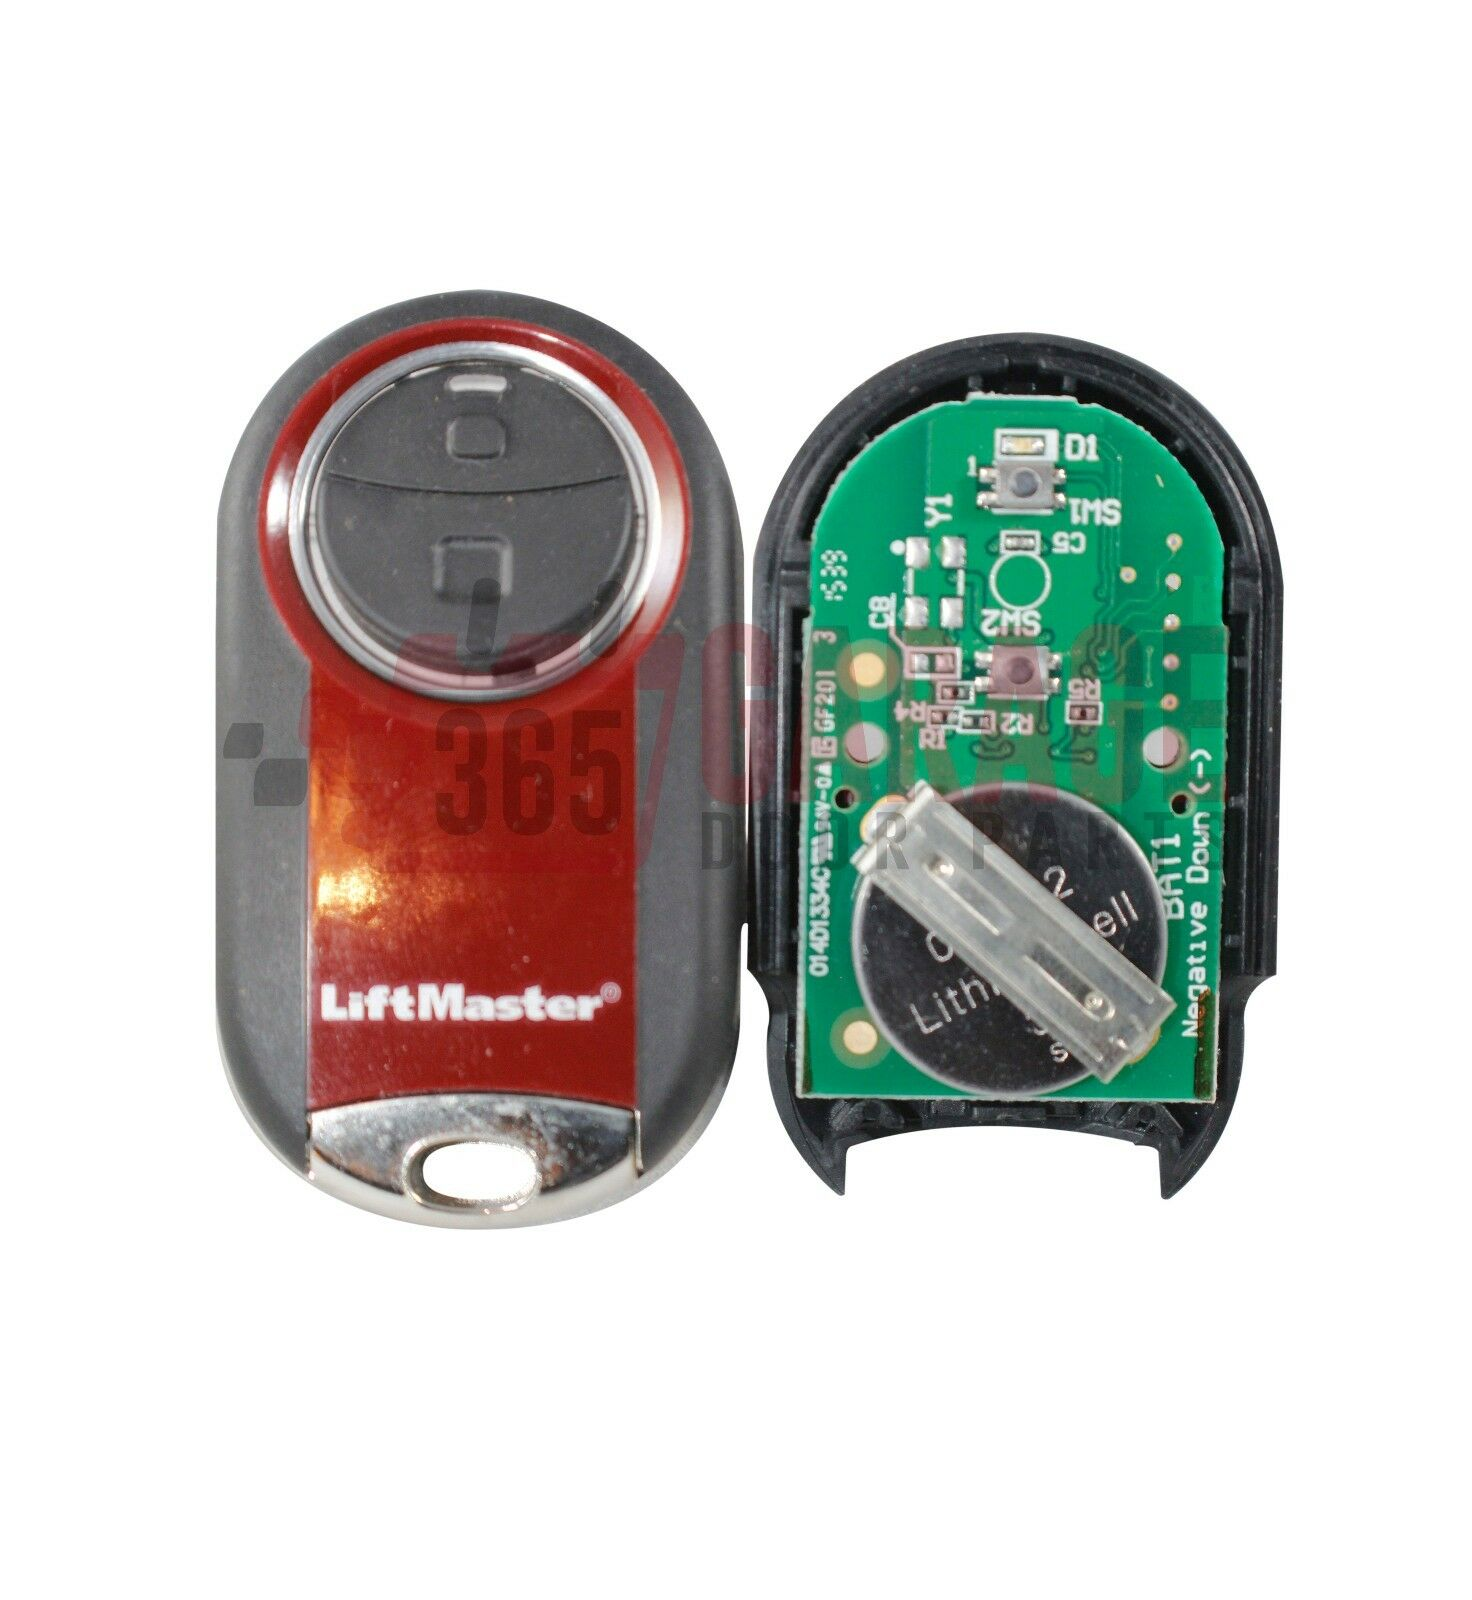 Chamberlain Garage Door Opener Light Keeps Coming On: Liftmaster 374UT Mini Universal Remote Control